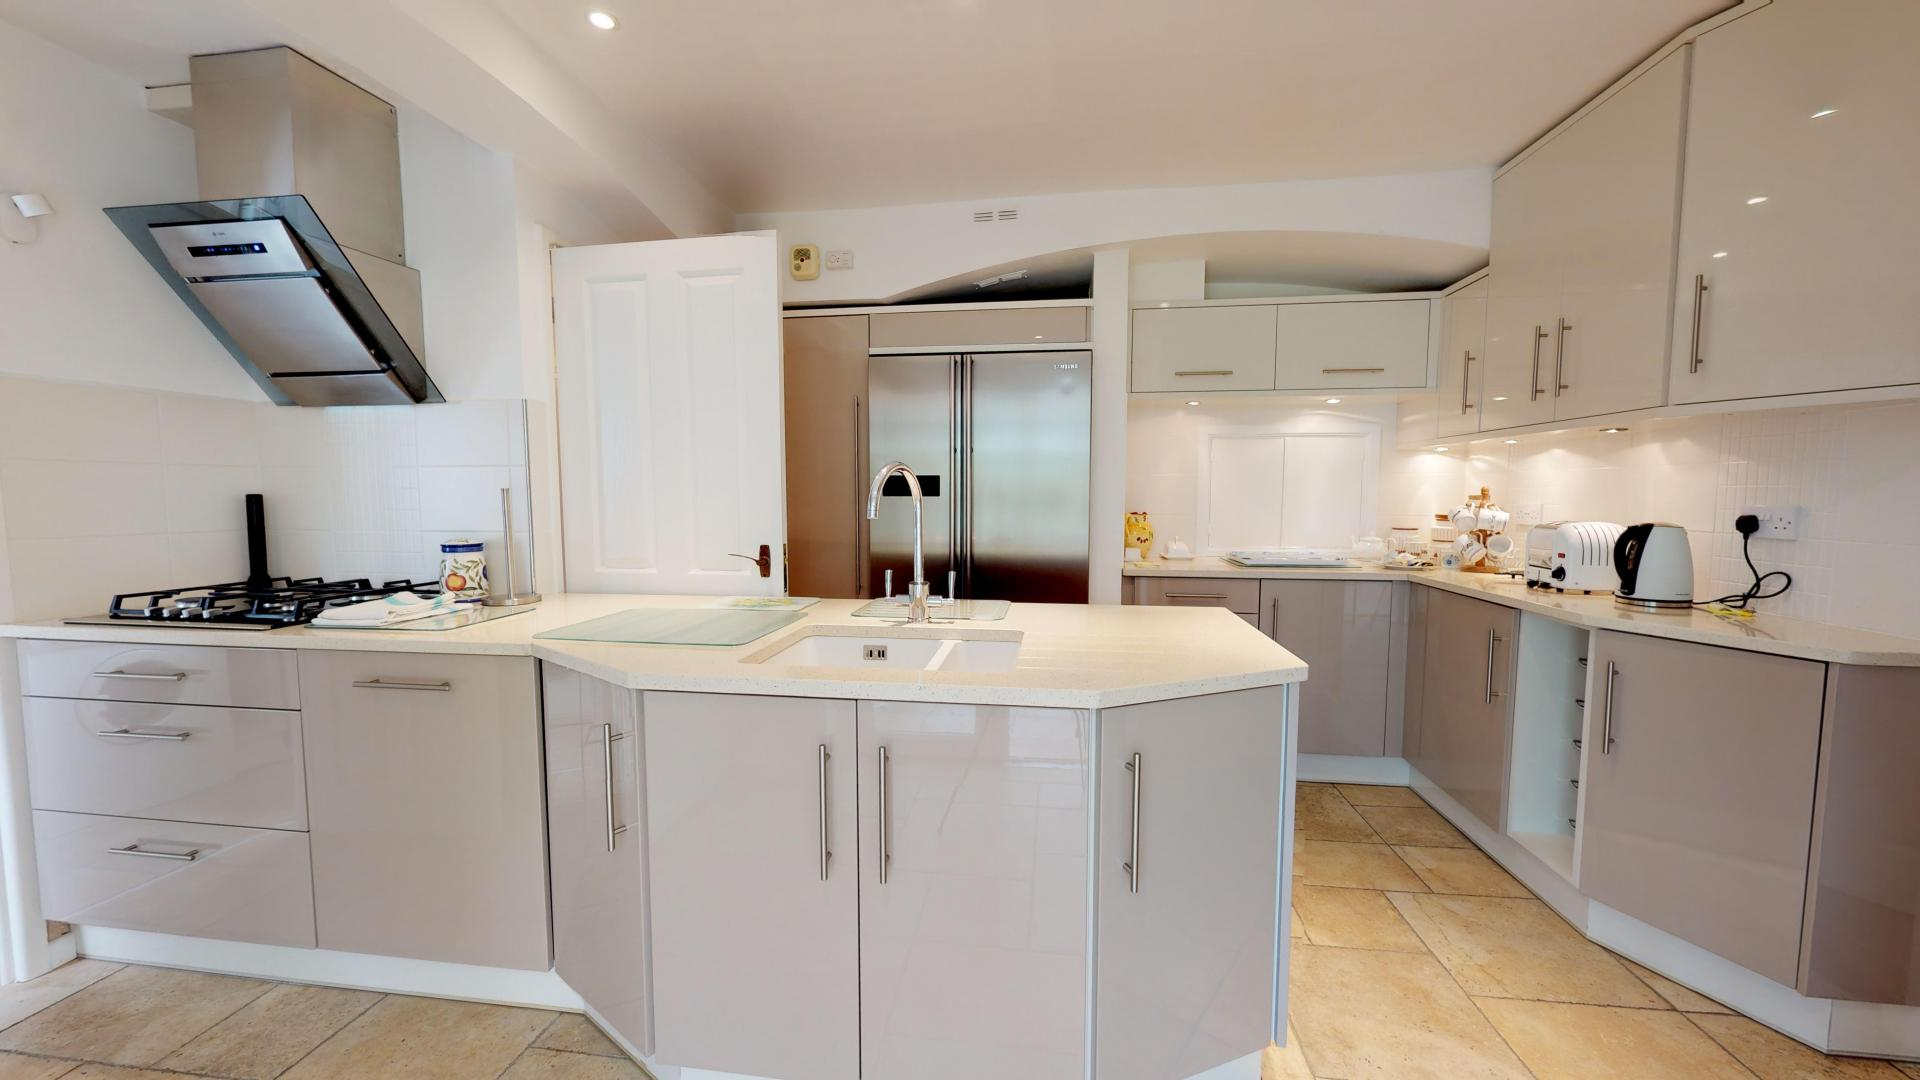 Kitchen at Blenheim Gate House, Centre, Woodstock - Citybase Apartments